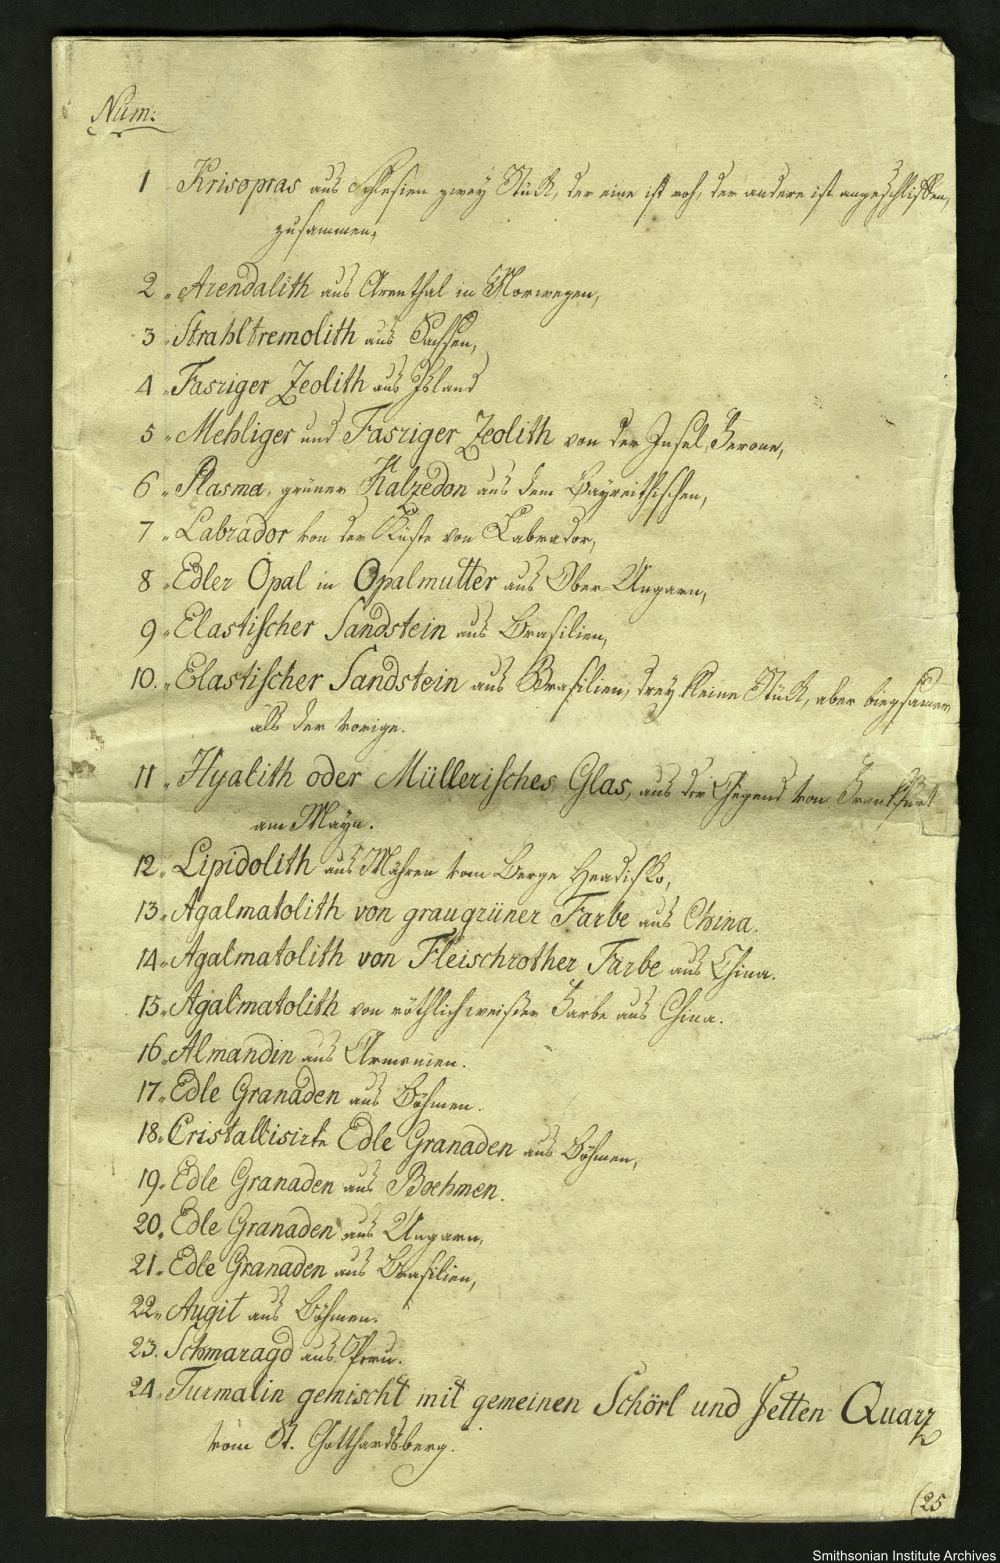 a list of Smithson's mineral samples circa 1800